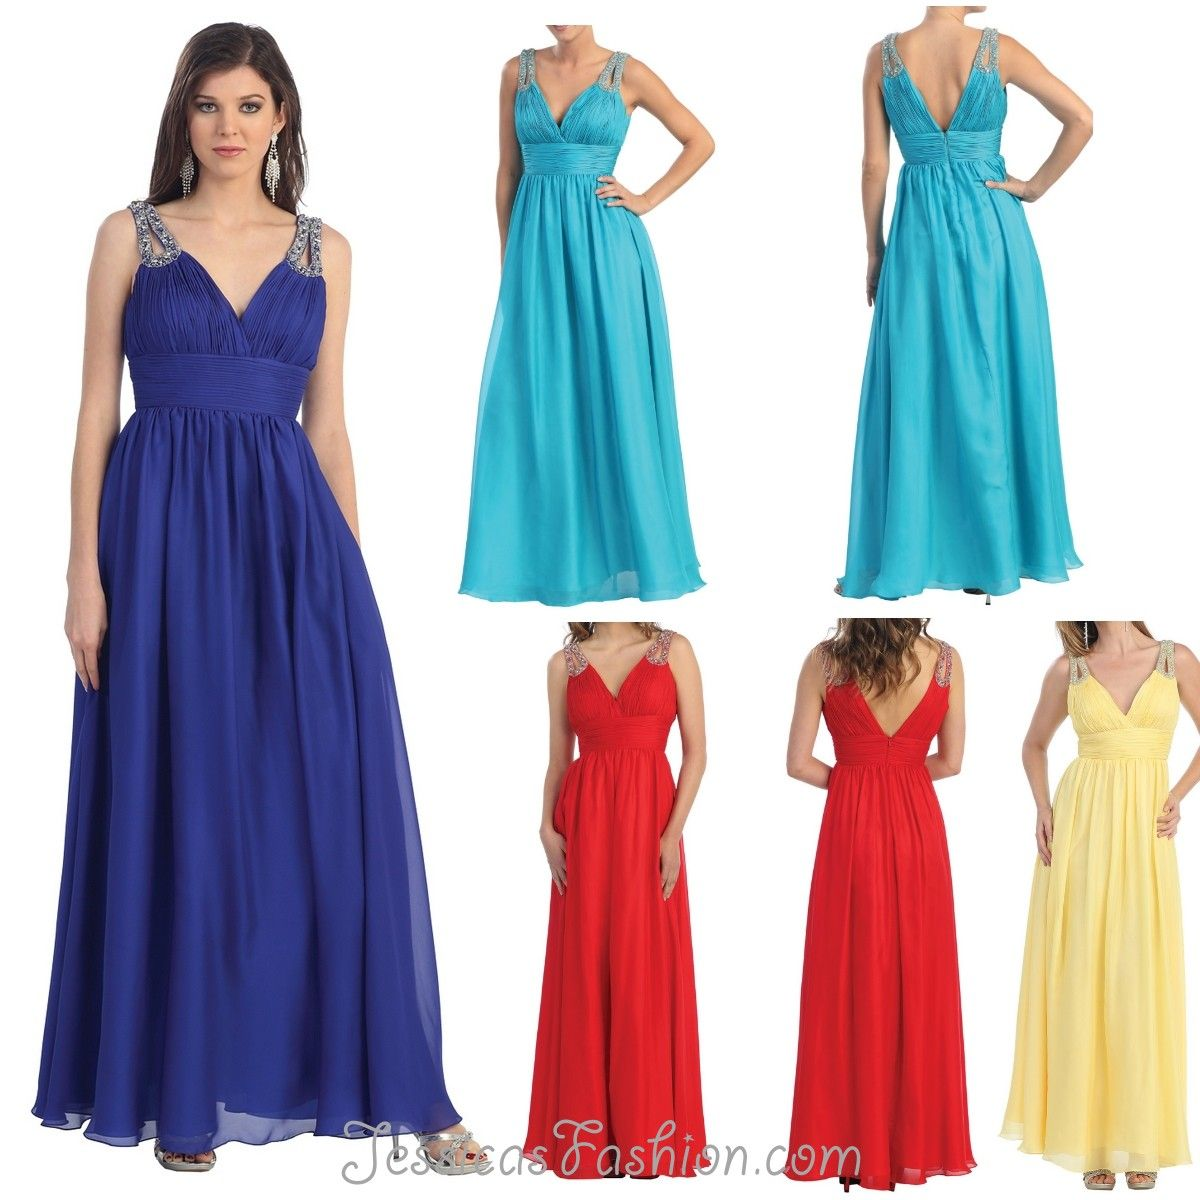 Long bridesmaid dress in color blue black u more beaded style in